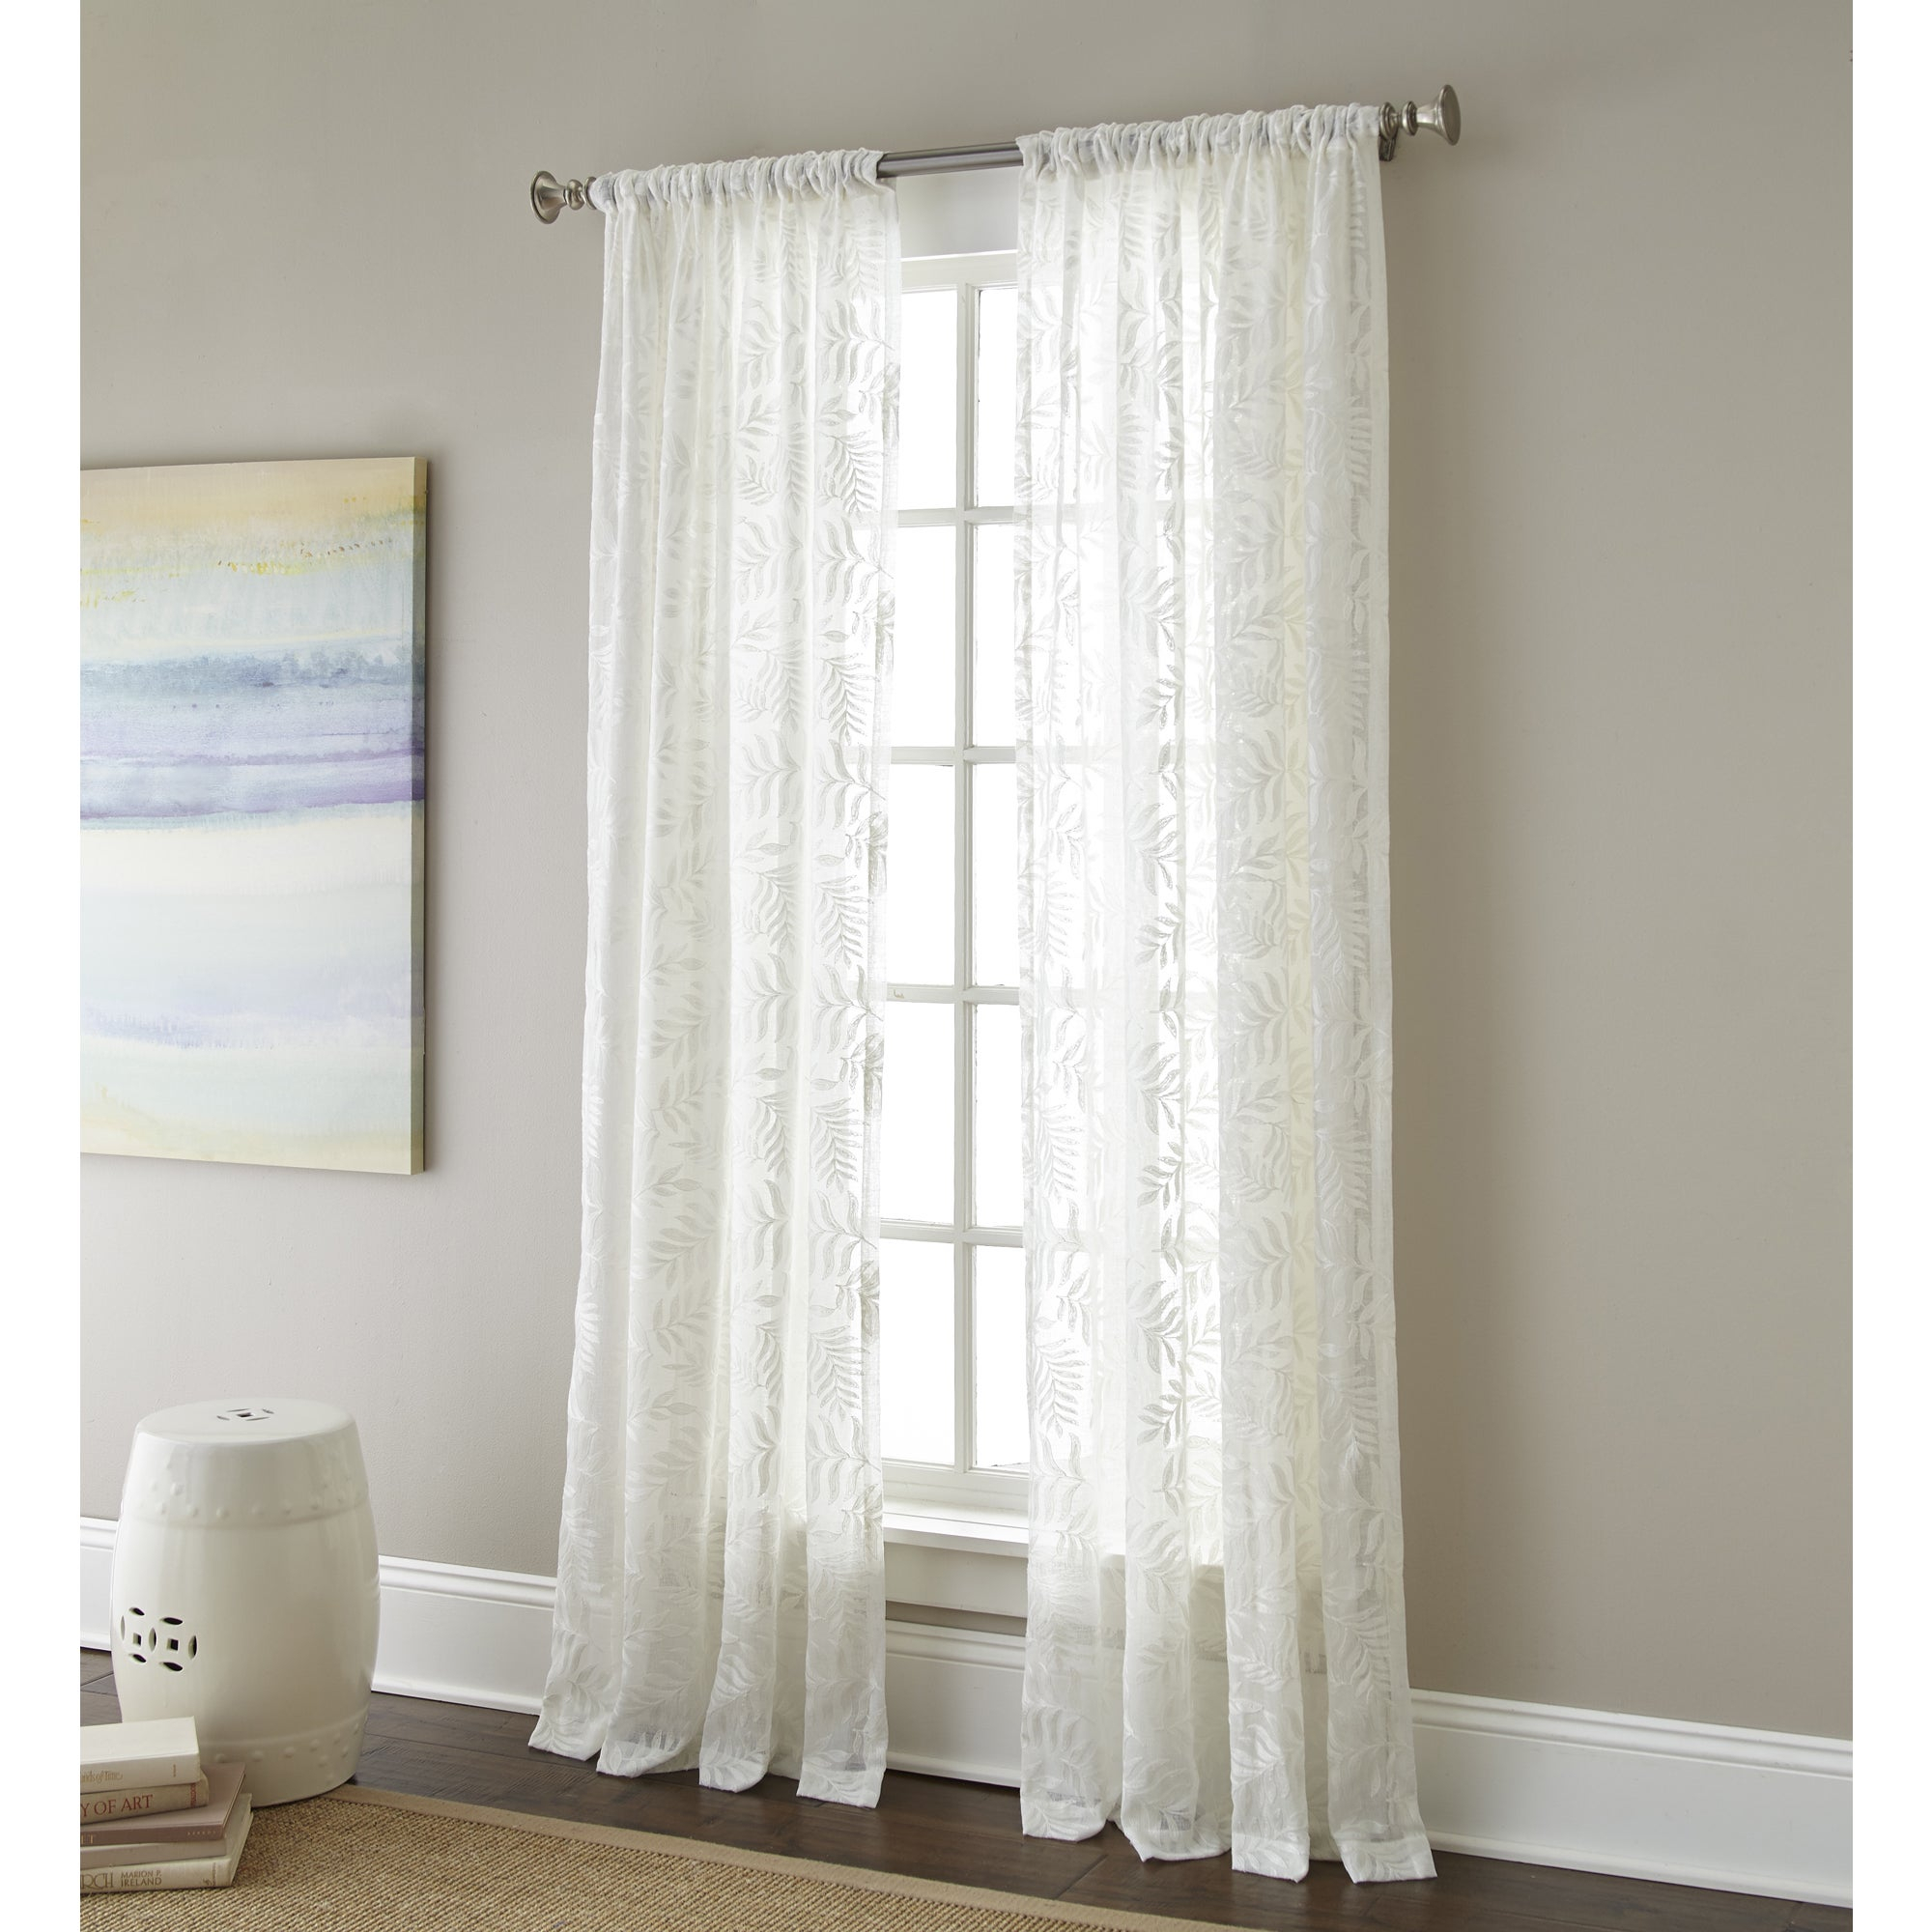 Sherry Kline Ferndale Luxury White Embroidered Sheer Curtain Panel Pair With Regard To Kida Embroidered Sheer Curtain Panels (View 11 of 20)